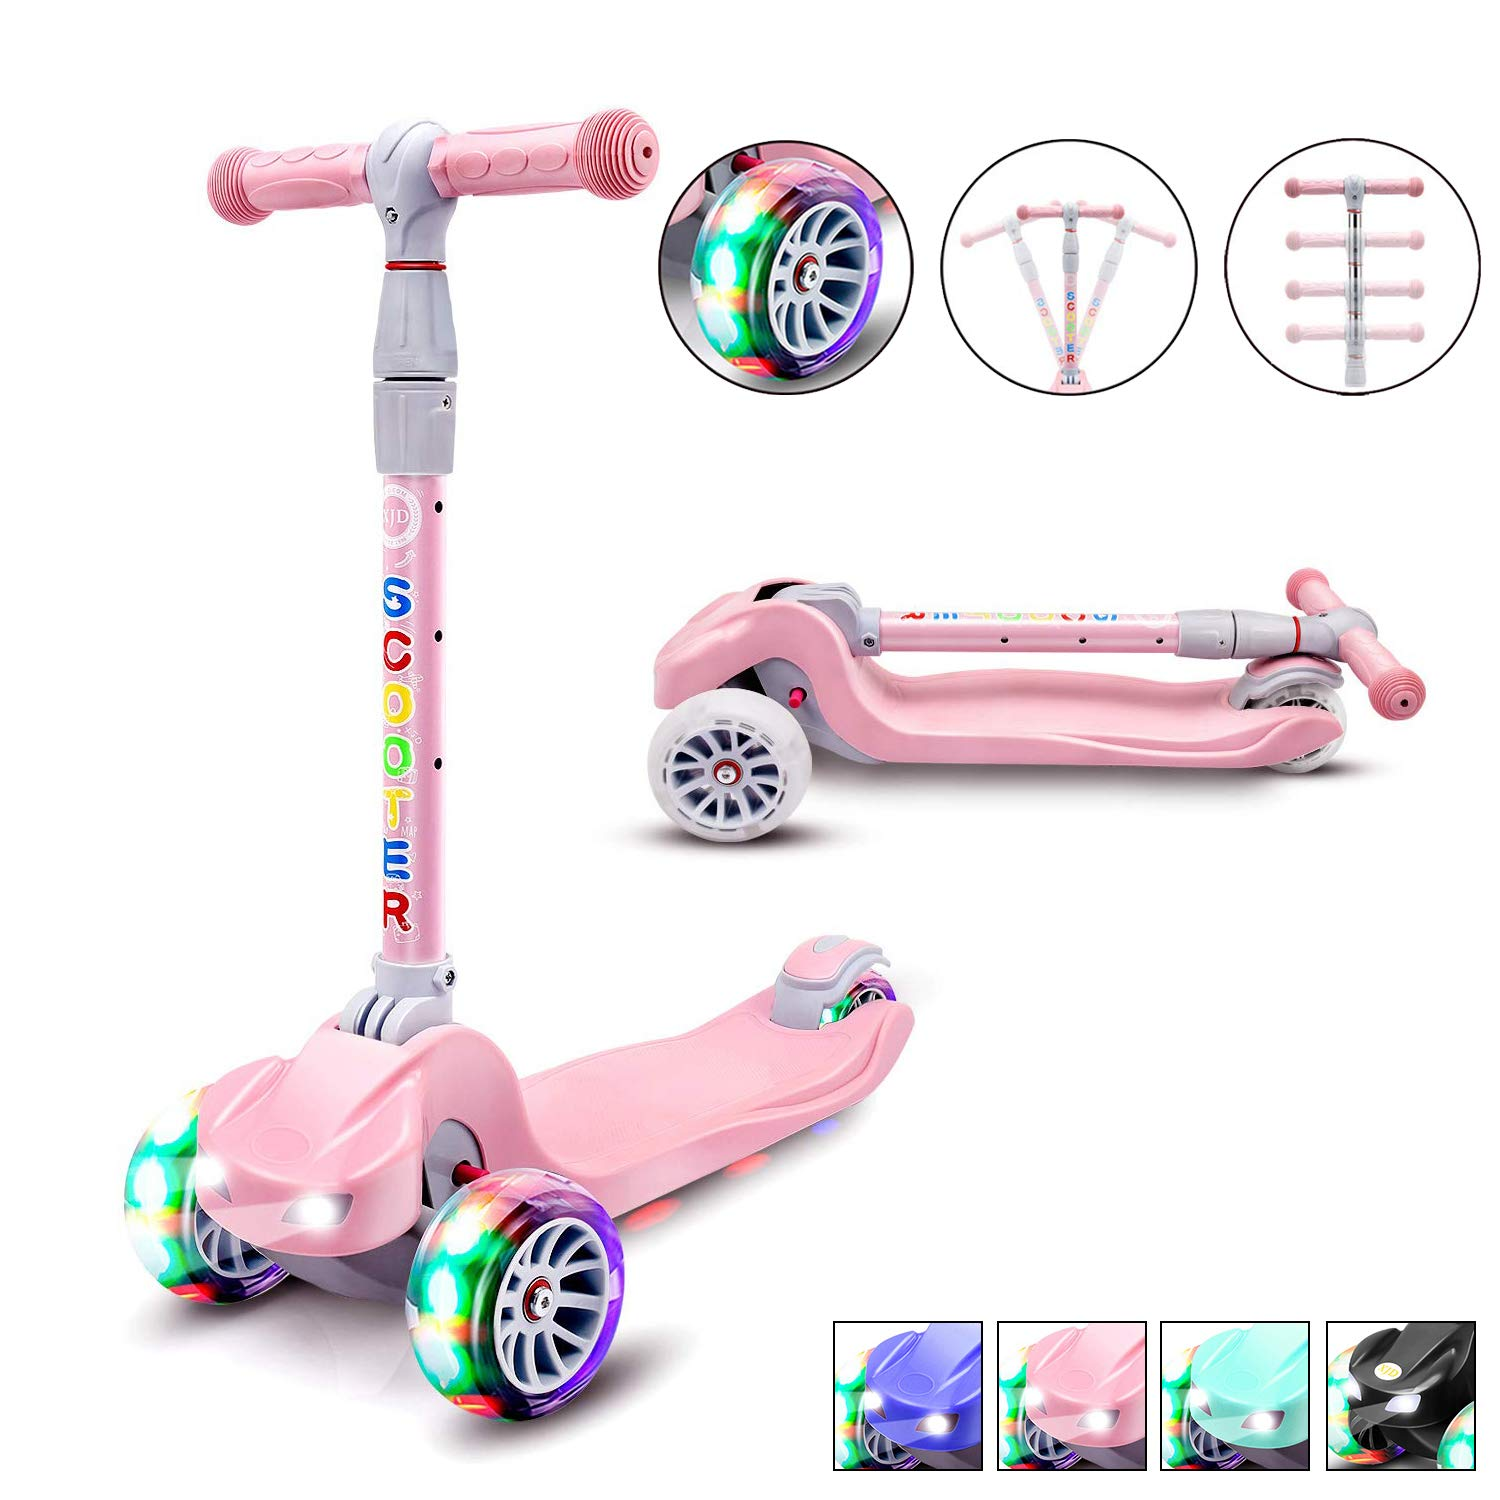 XJD Kick Scooter for Kids 3 Wheel Scooter for Toddlers Girls Boys Toddler Scooter 4 Adjustable Height, Lean to Steer with PU LED Light Up Wheels for Children from 3 to 14 Years Old, Pink by XJD